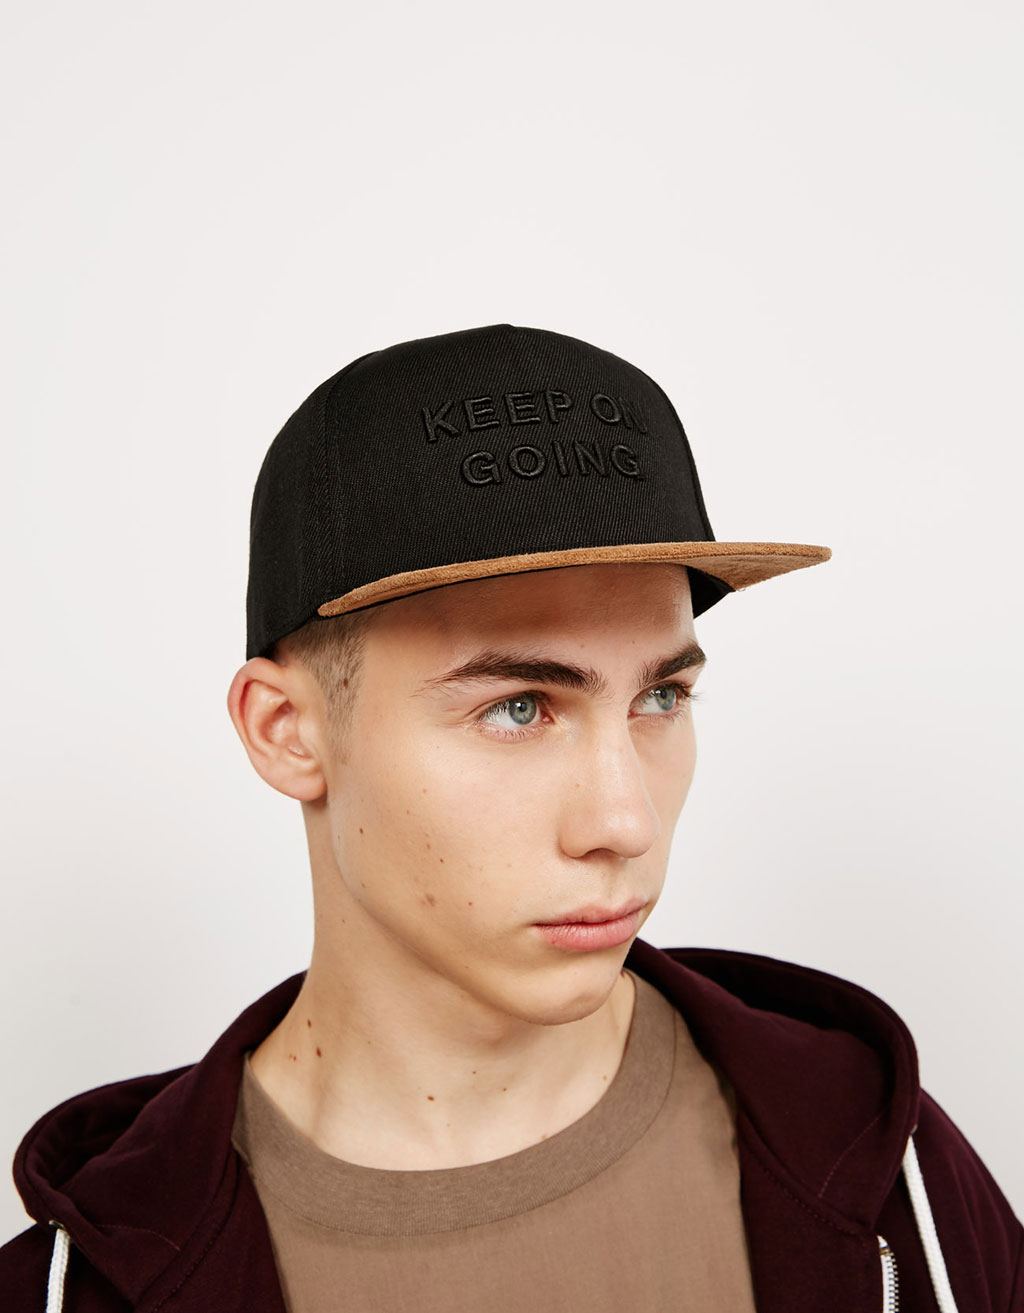 Text cap with leather style visor